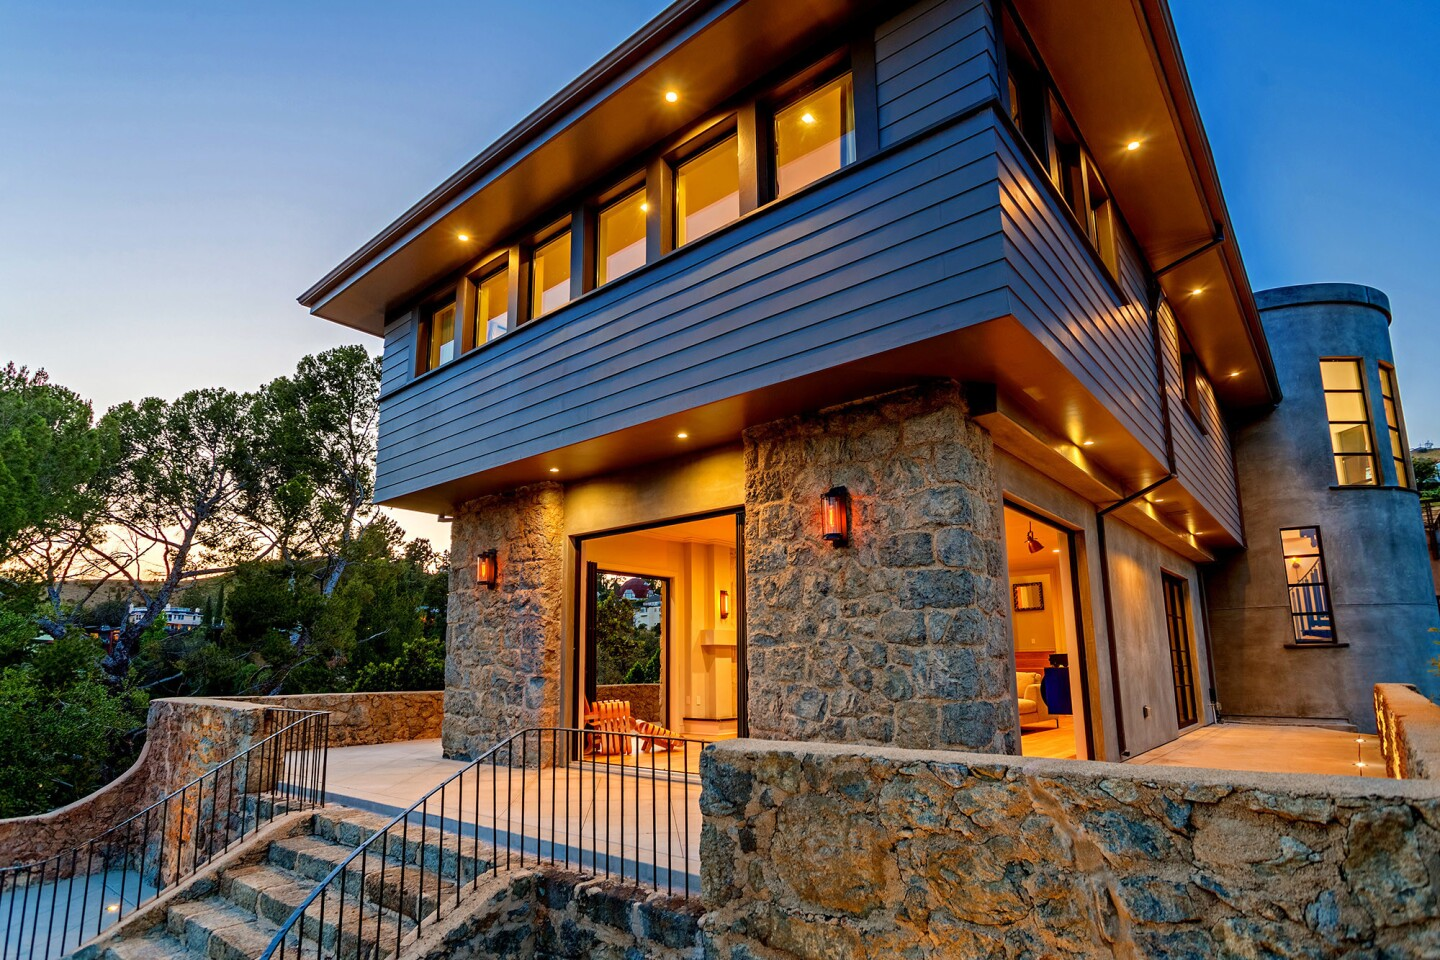 Home of the Week | A modern castle in Hollywoodland